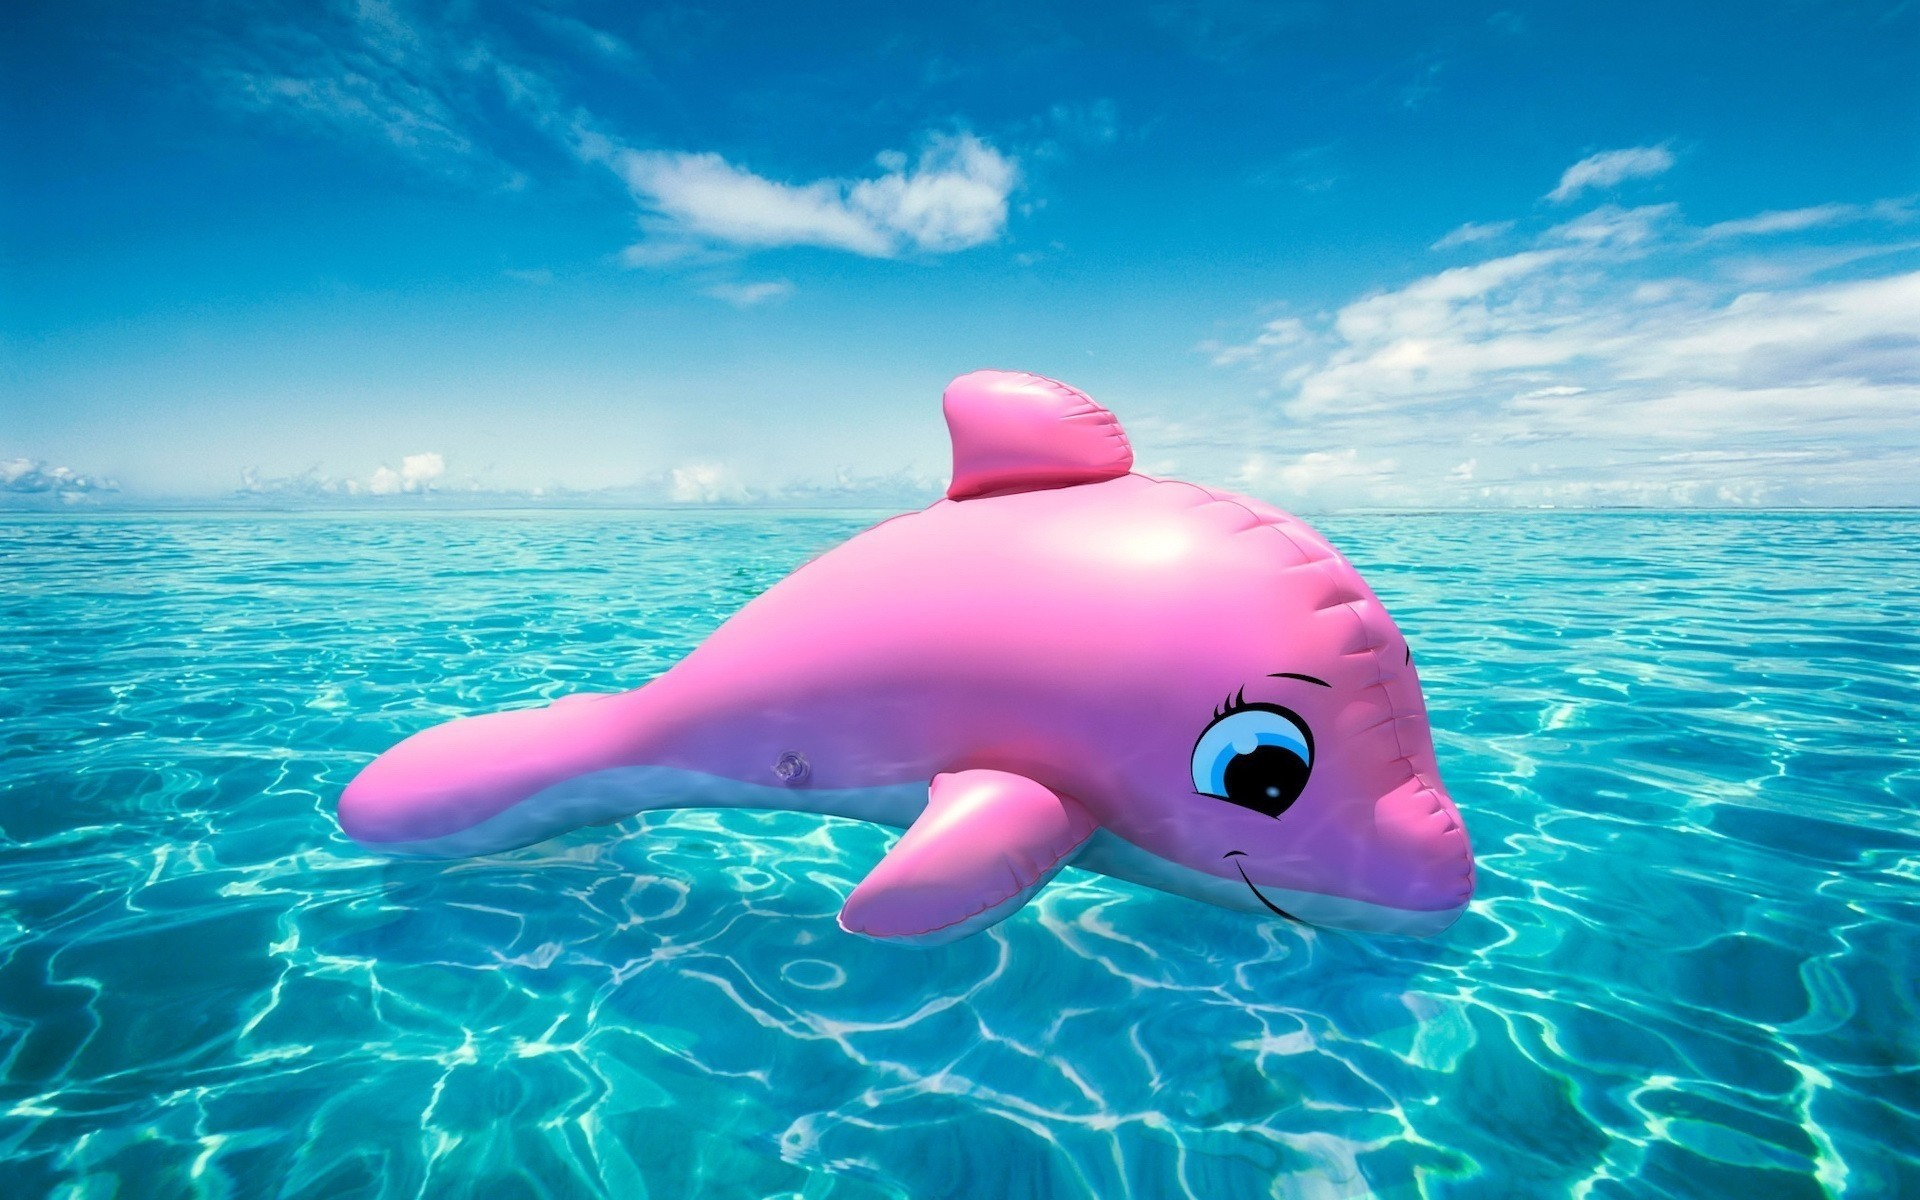 Pink Whale Iphone Wallpapers For Free